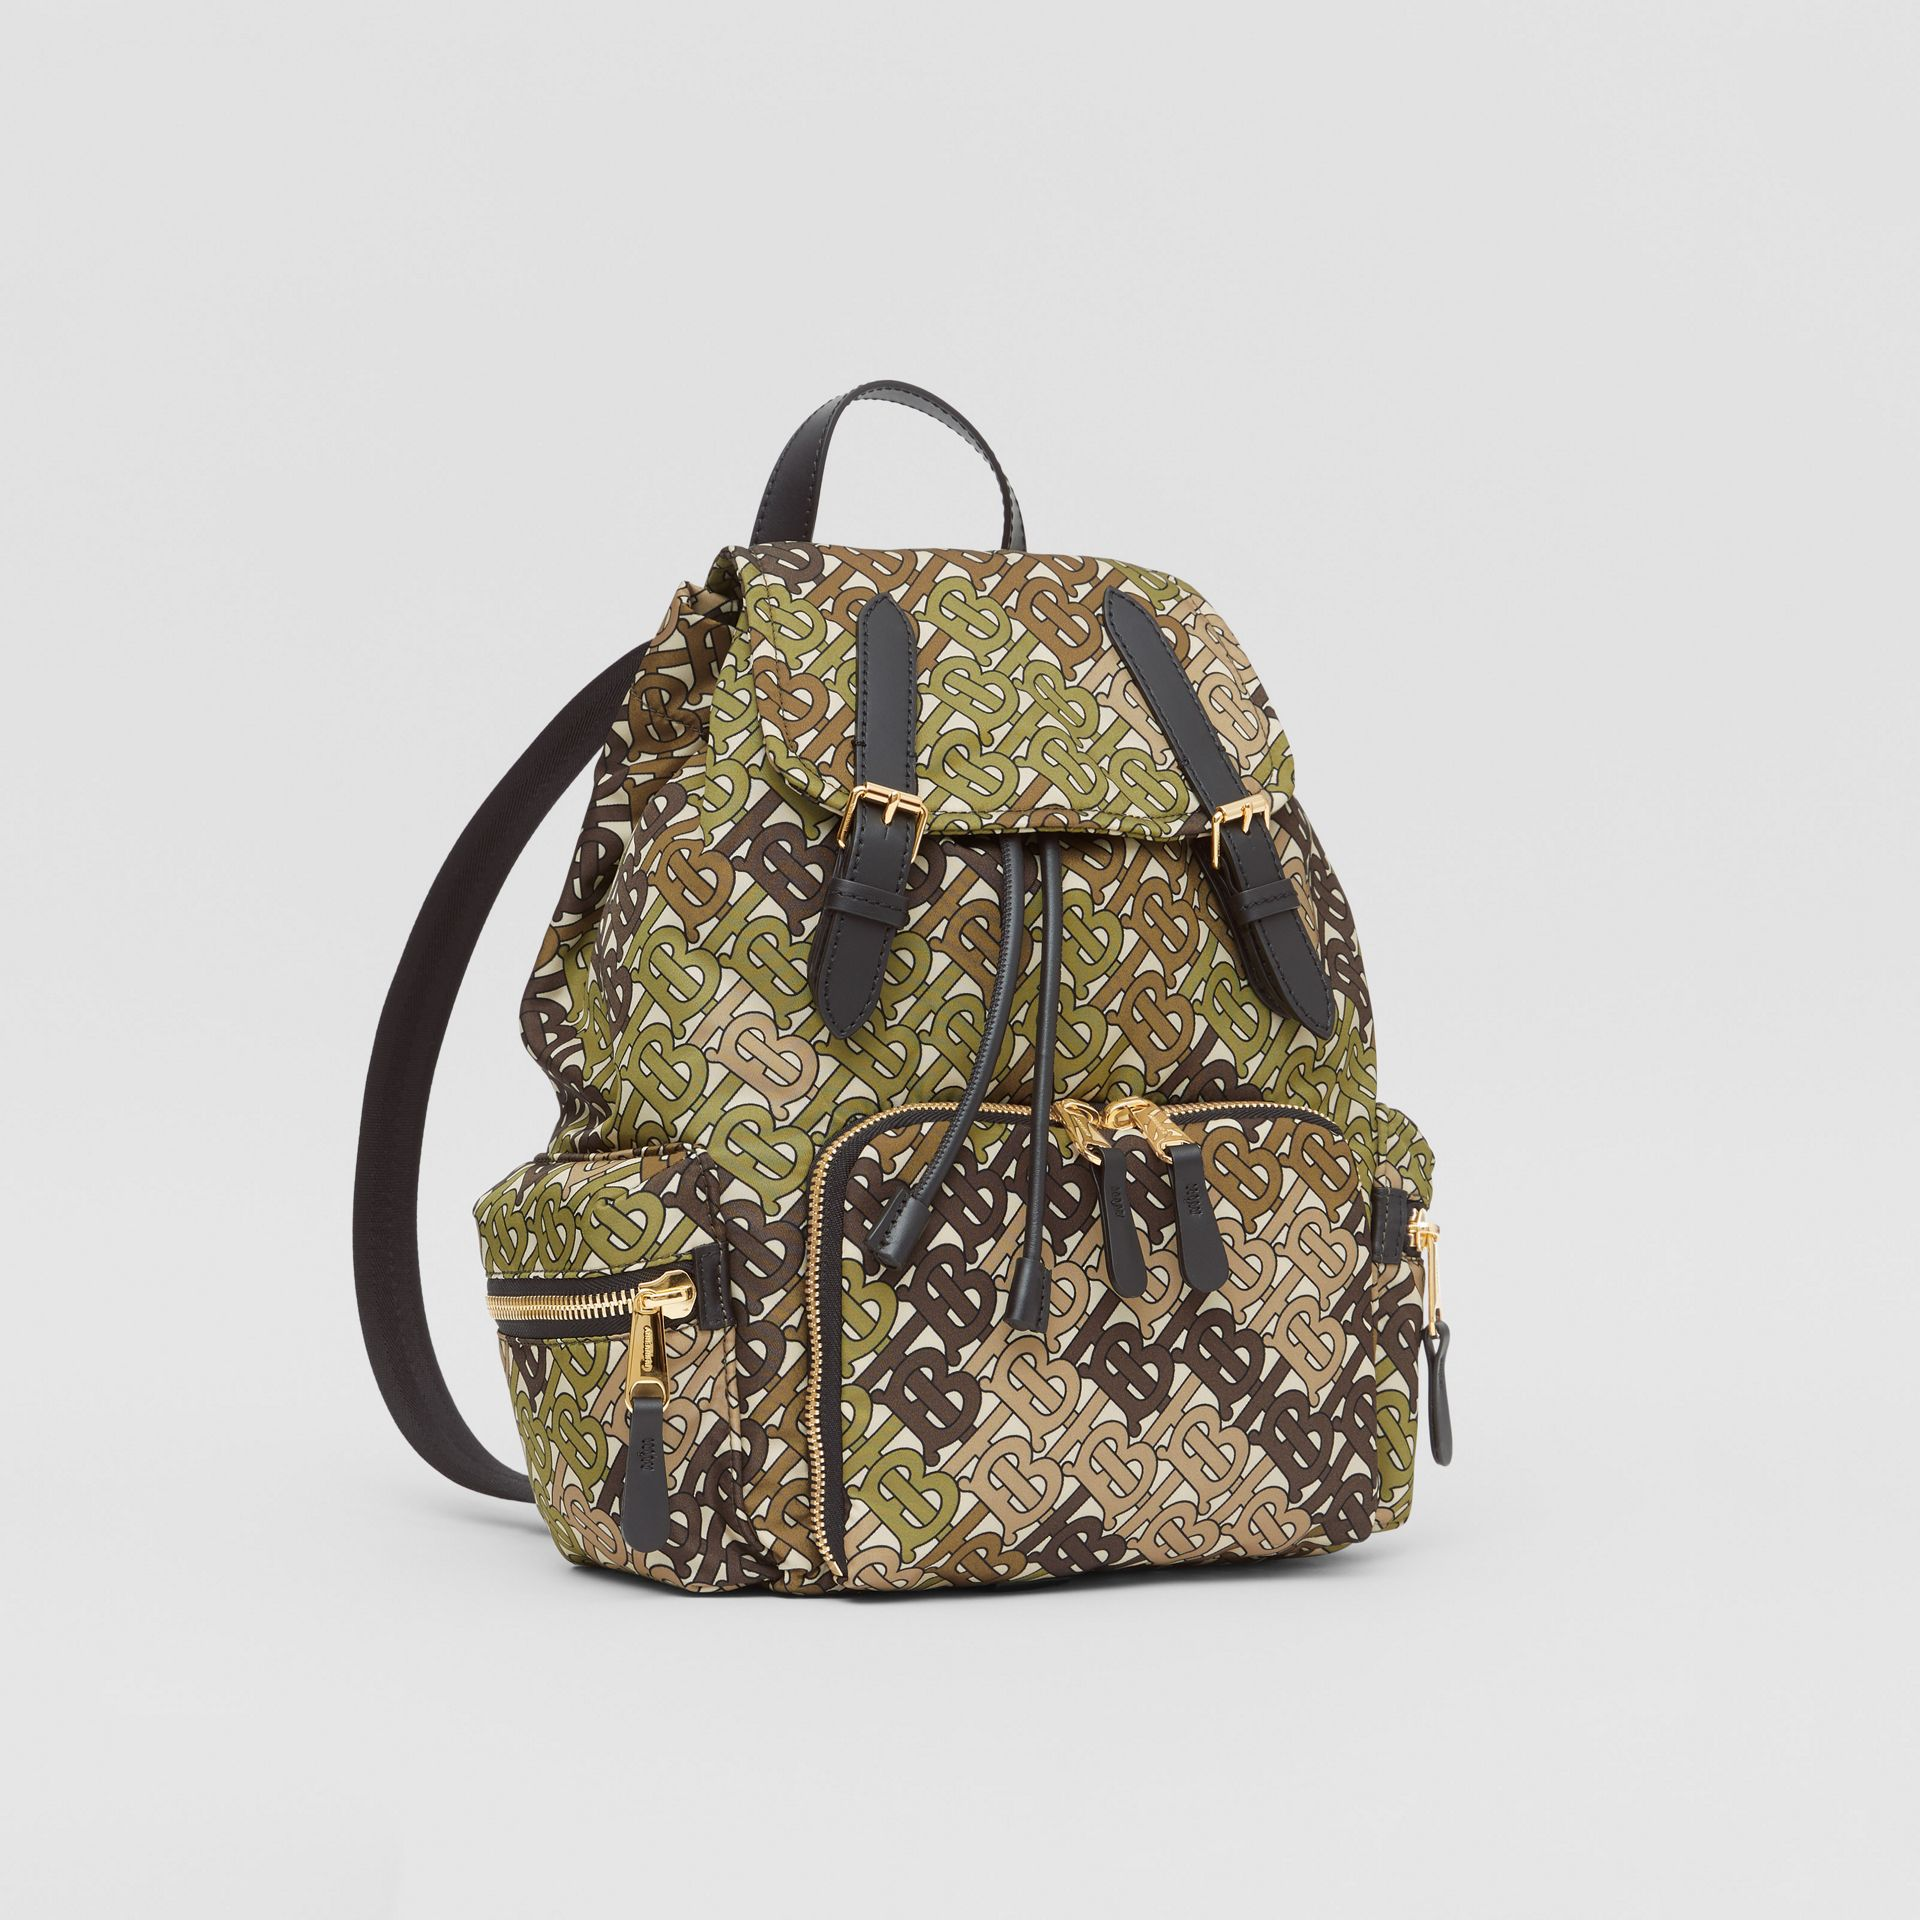 Sac The Rucksack moyen en nylon Monogram (Vert Kaki) - Femme | Burberry - photo de la galerie 6